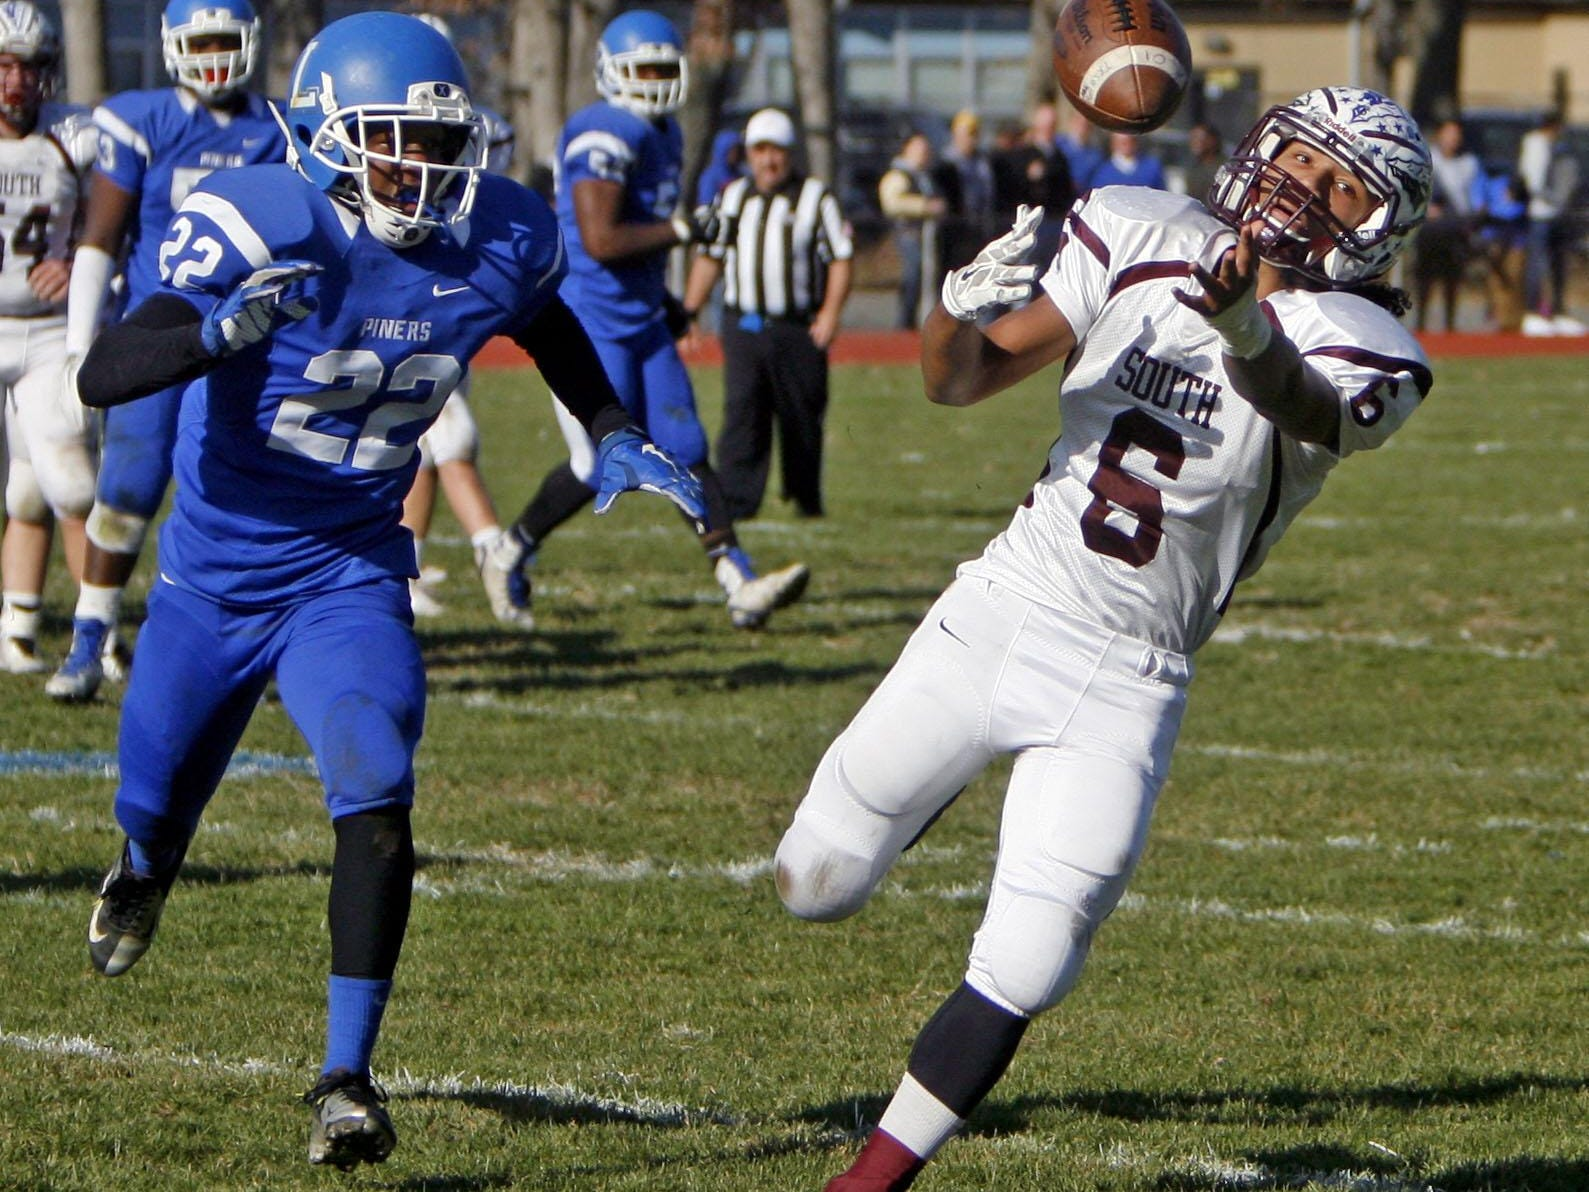 Toms River South's Dashaun Alexander (6), right, is just out of reach of a pass at Lakewood High School Nov. 26, 2015. Covering left is Lakewood's Ja'shon Fisher. Photo by Vincent DiSalvio / Special to The ASBURY PARK PRESS